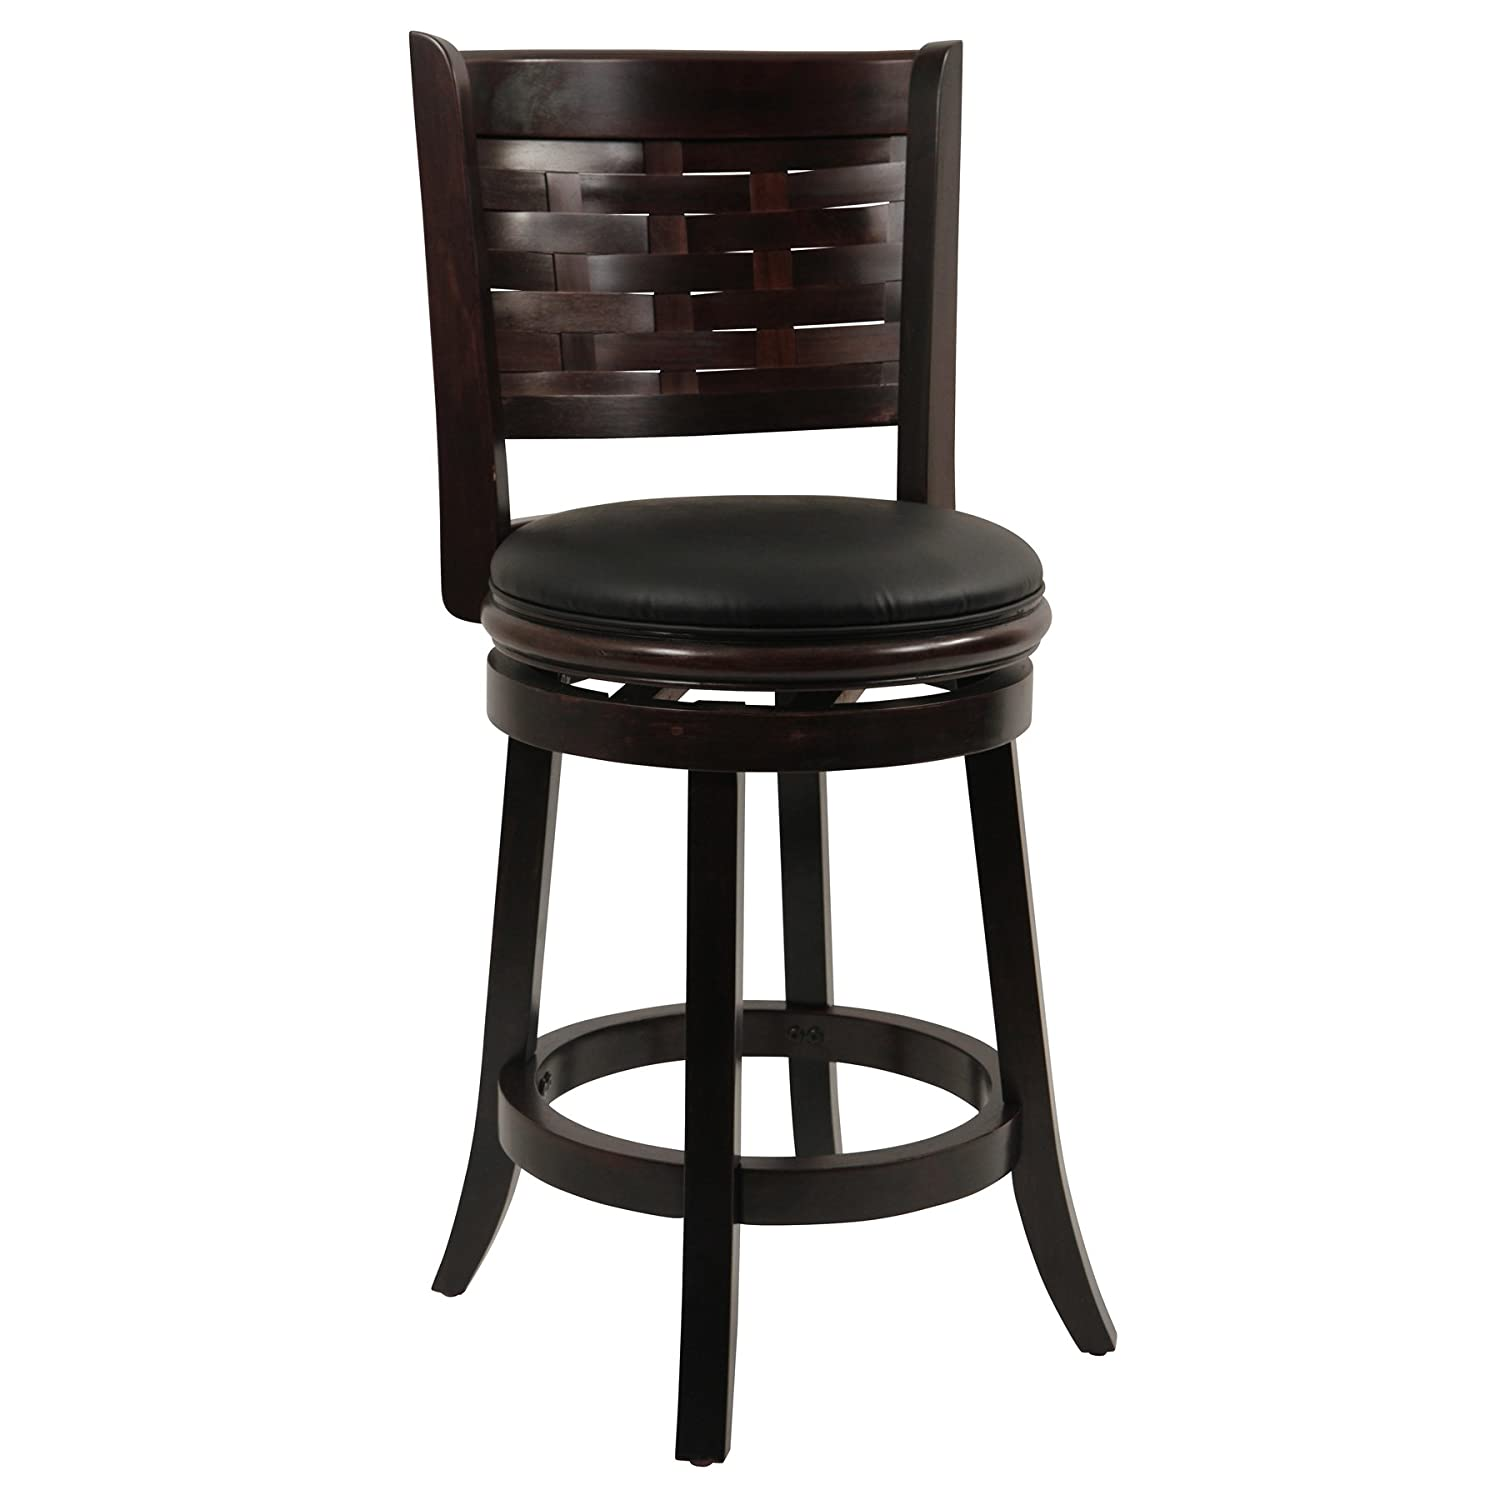 Cheap Bar Stools With Back 2013